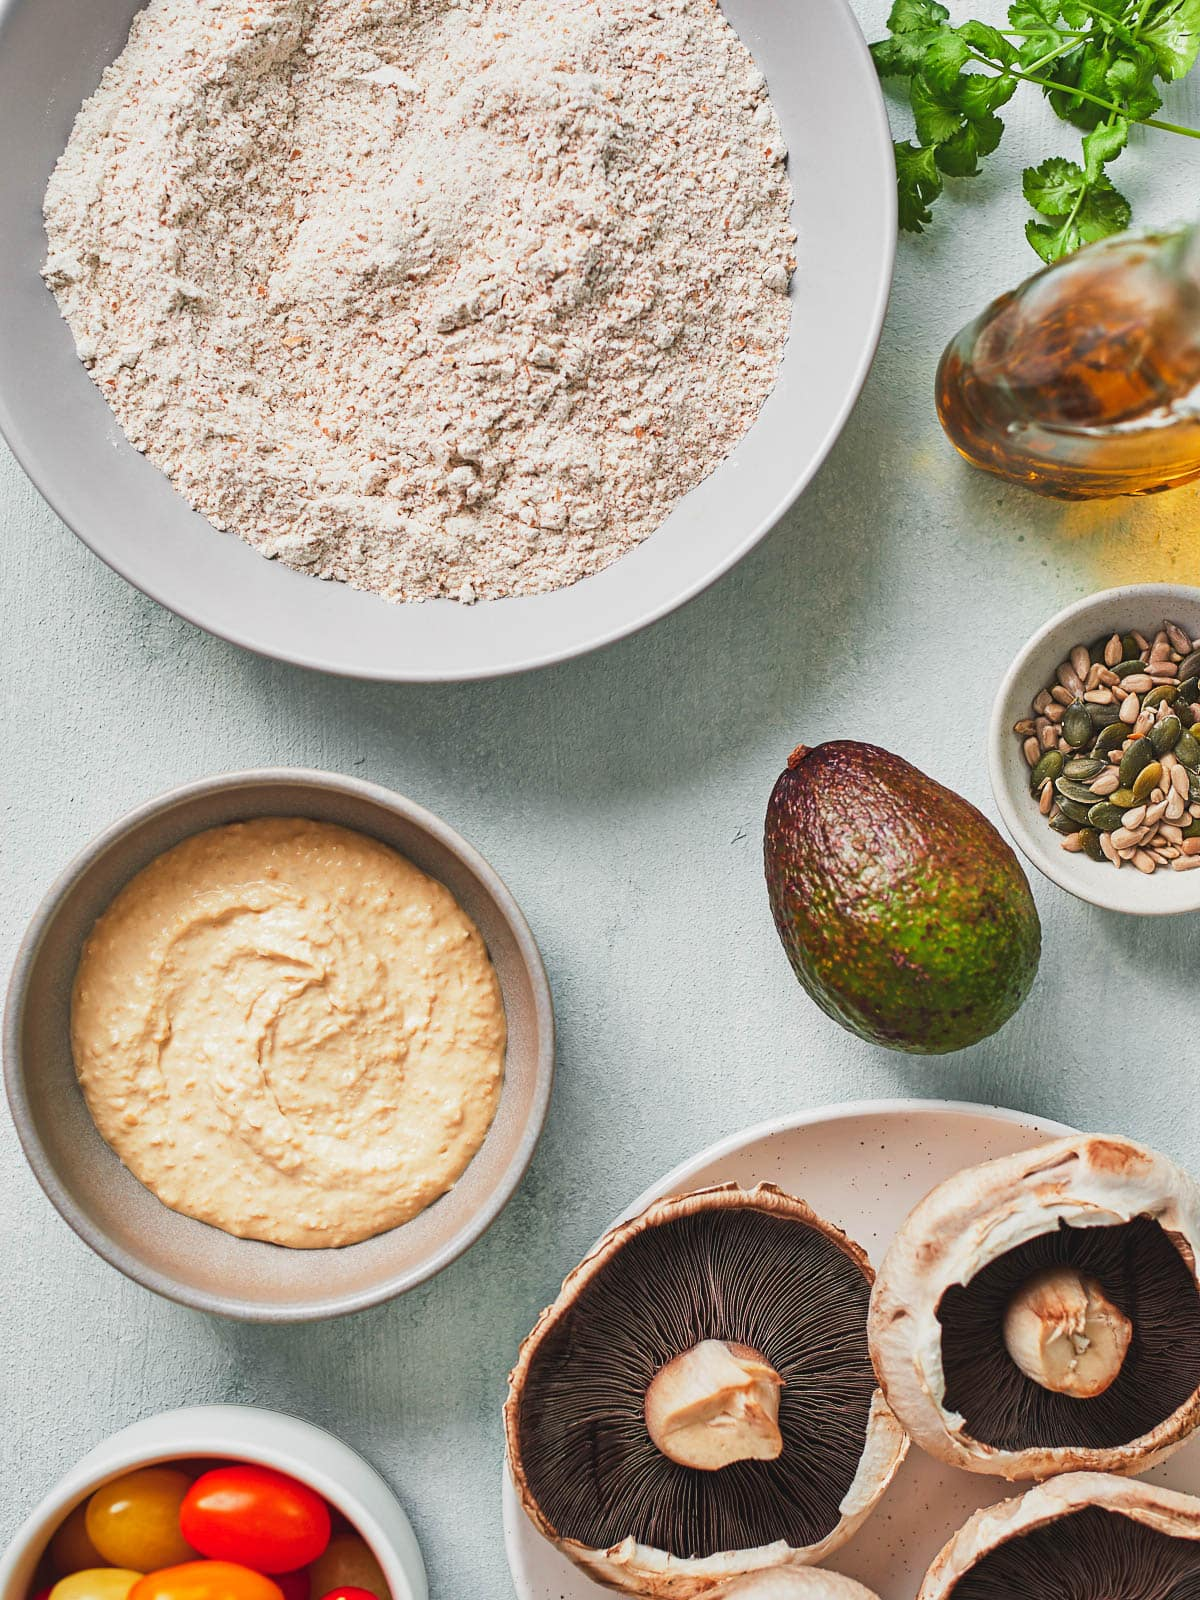 Ingredients for hummus bread- flour, baking powder and salt, hummus, olive oil, mushrooms, tomatoes, avocado, seeds and herbs